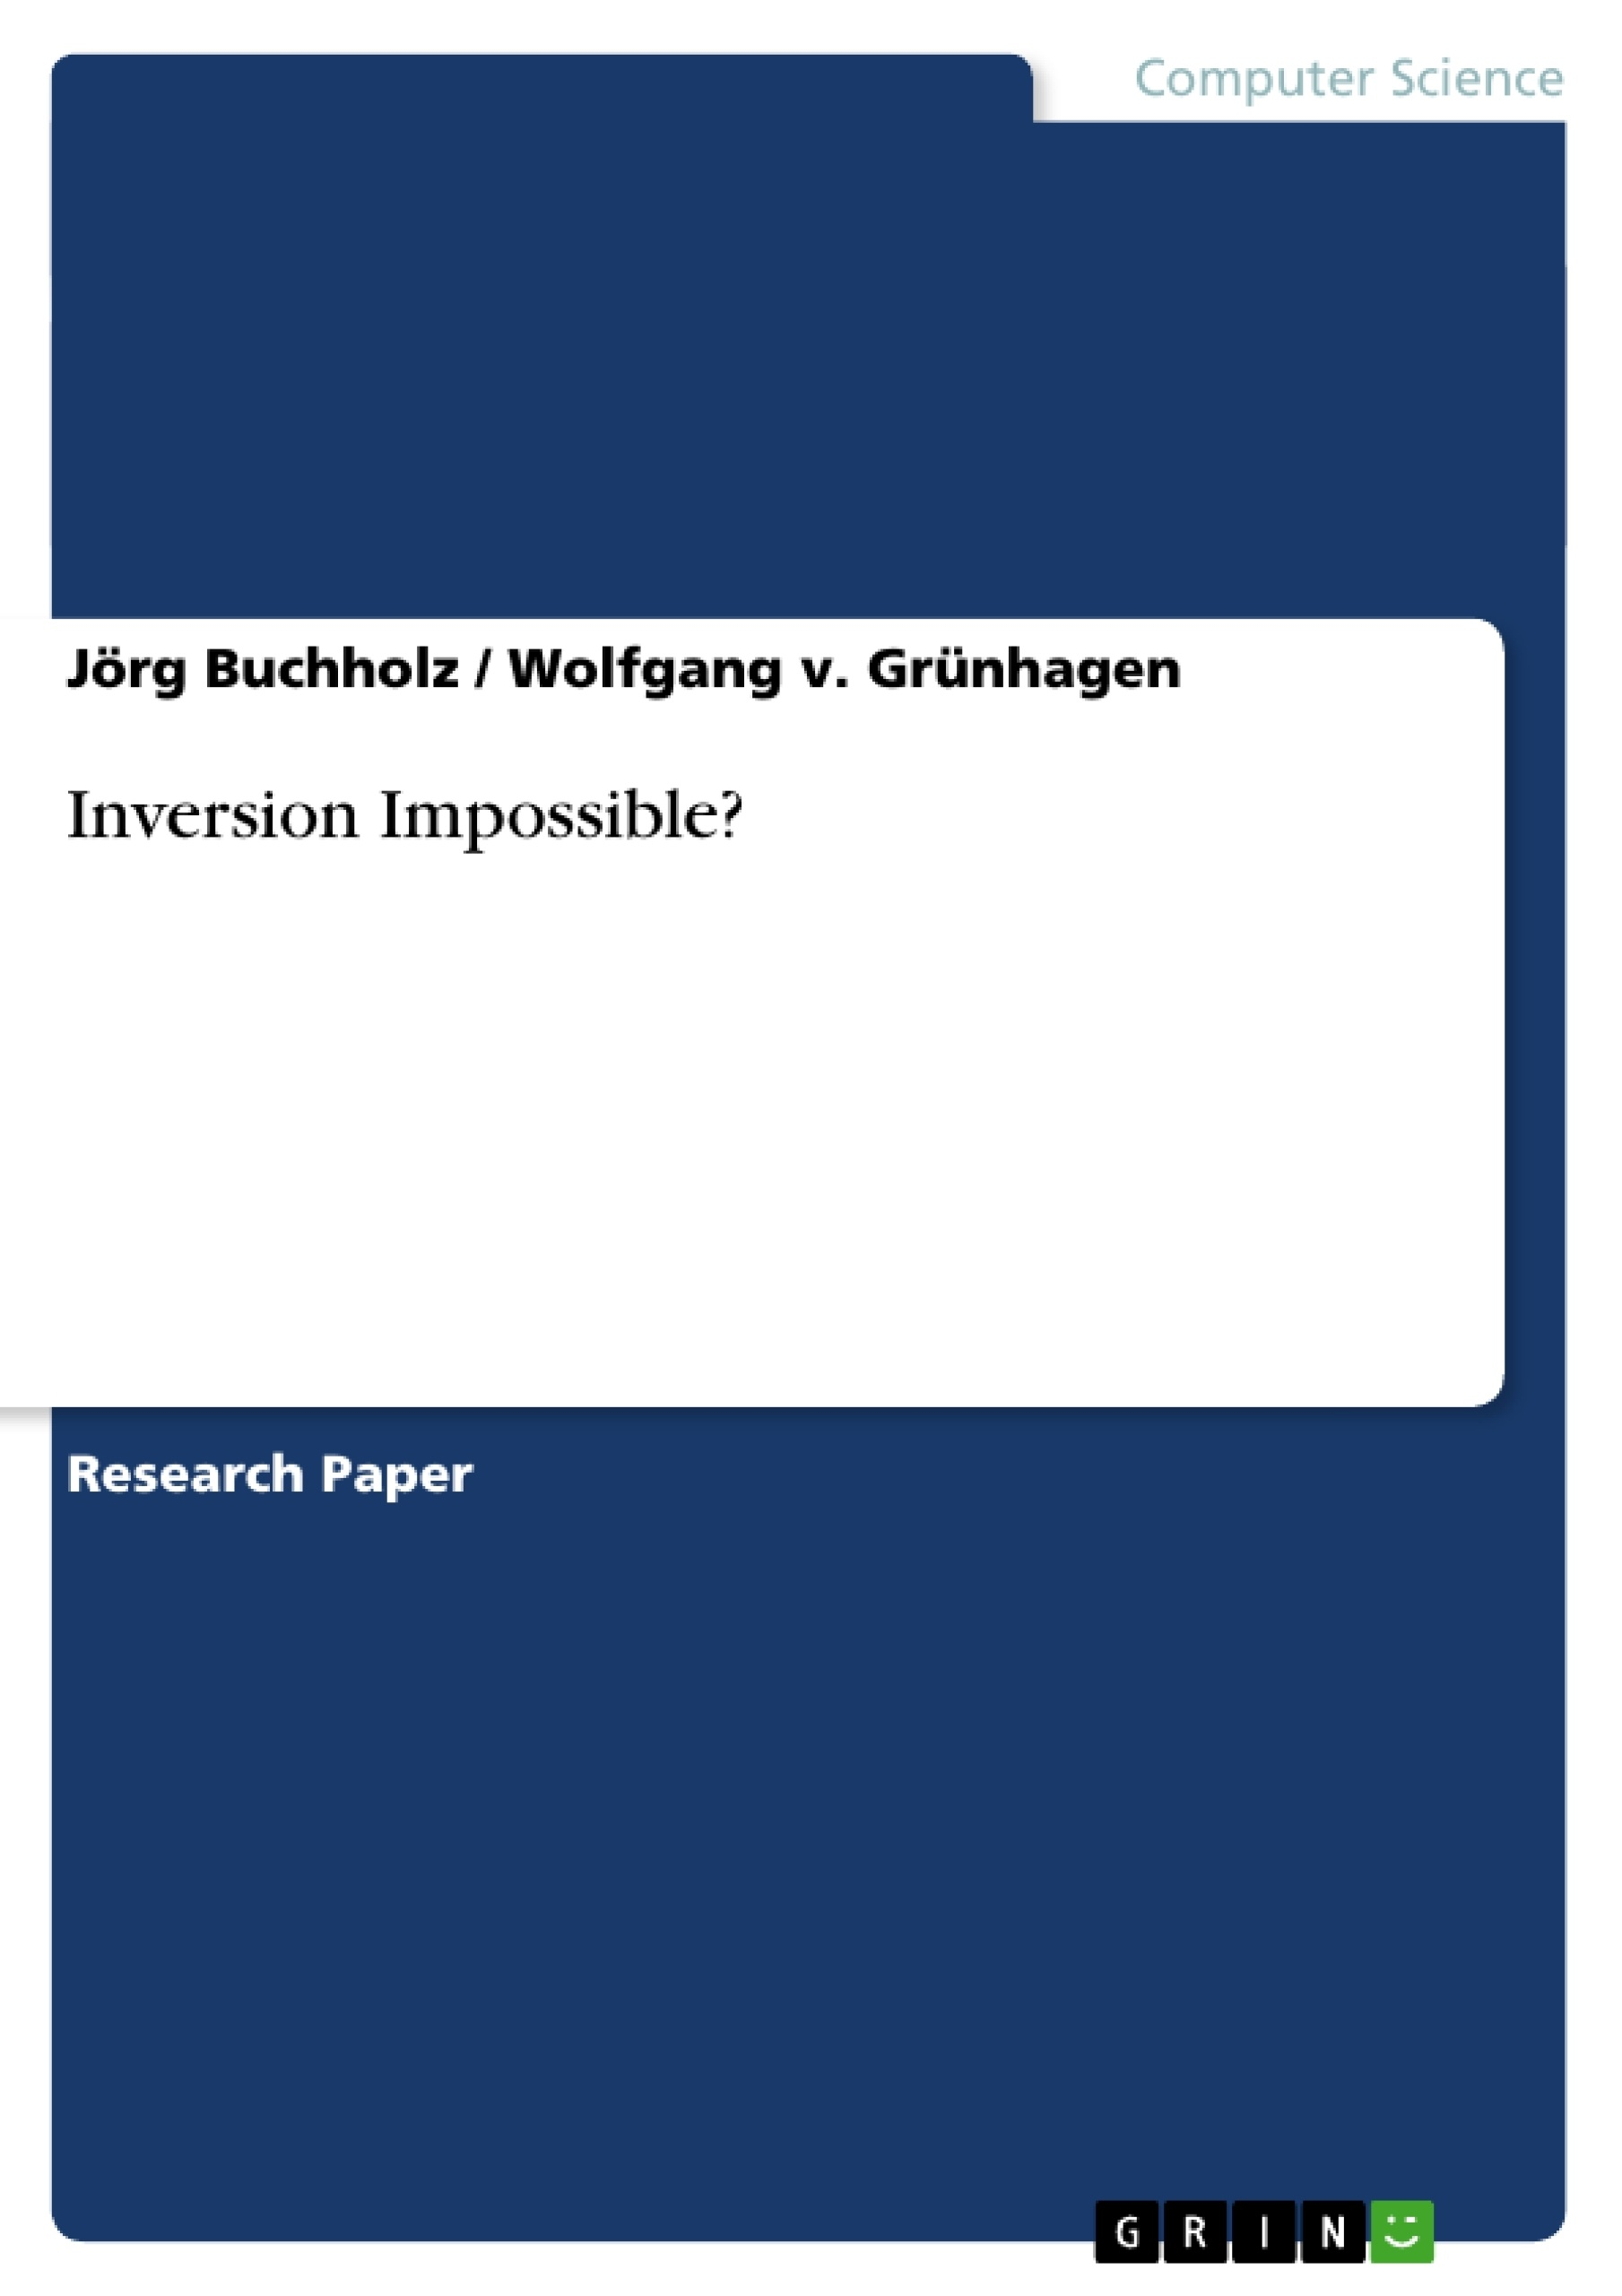 Title: Inversion Impossible?